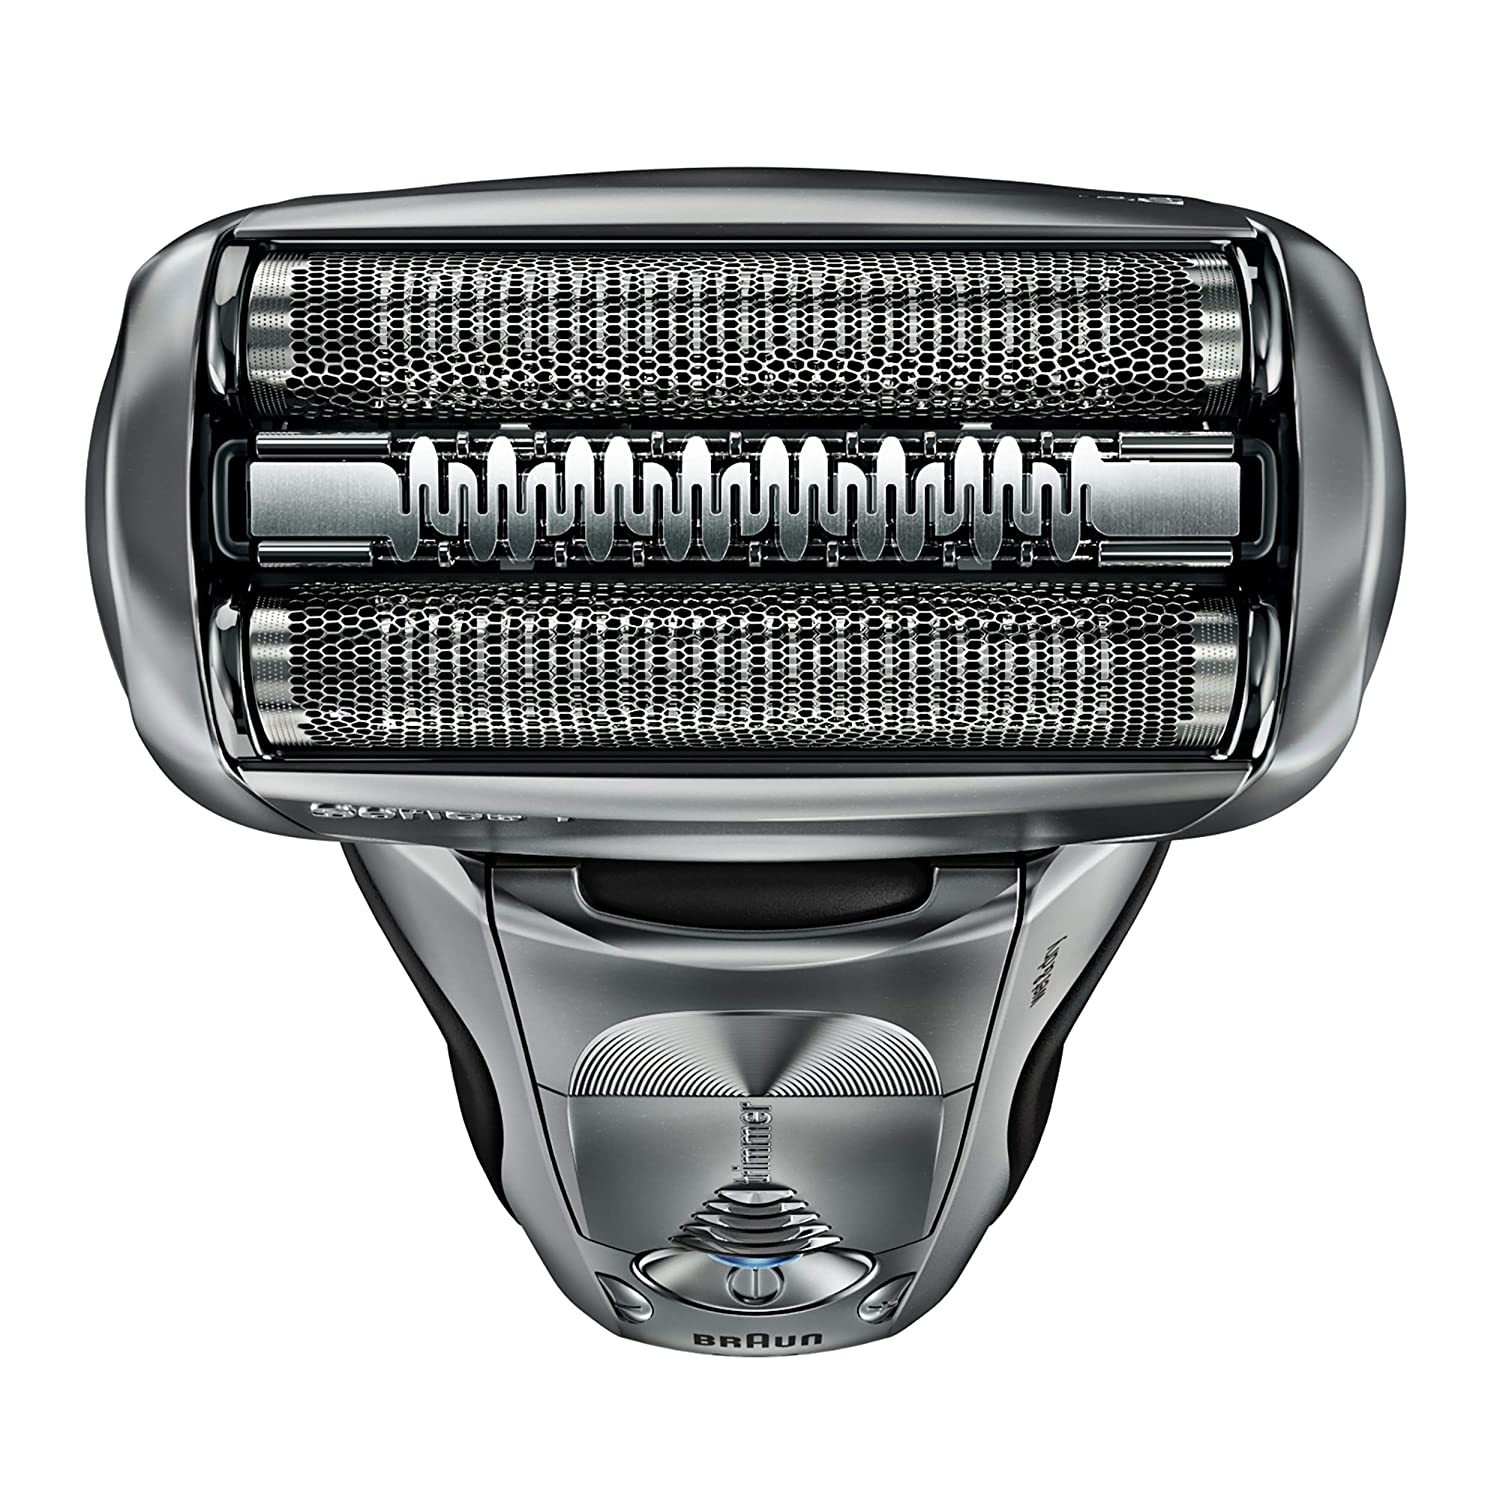 Braun Series 7 shaver head